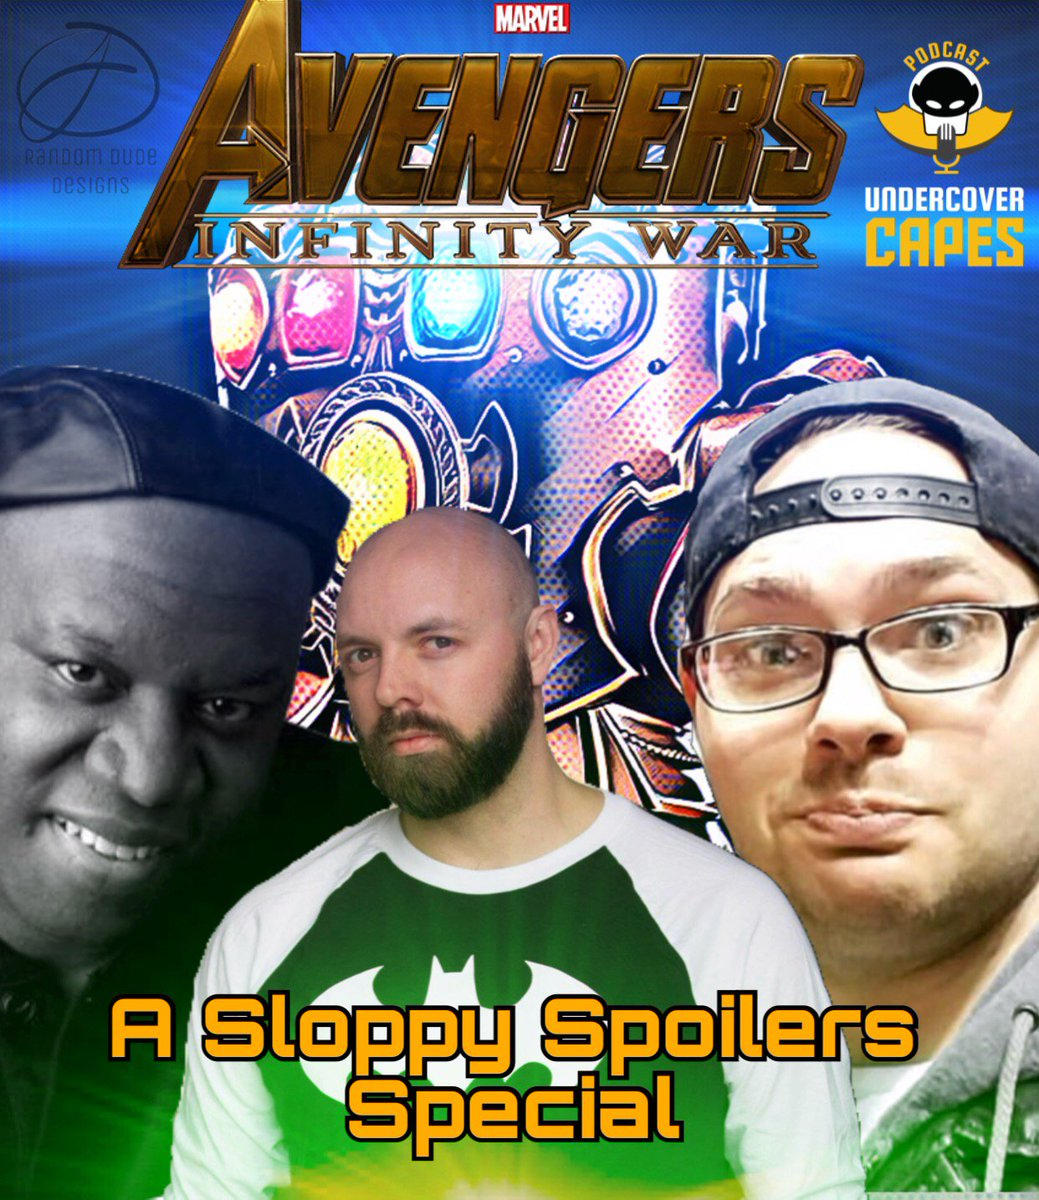 .@TheRandomeDud3  is back and takes over #SloppySpoilers  along with @DT2ComicsChat  & @bamfingbob  as they discuss the latest @MarvelStudios  #Movie #Avengers: #InfinityWar only on @UndercoverCapes (Exclusive sound bites on our website only!) http://ow.ly/P43o30jTpY8  pic.twitter.com/riezYVoz1l